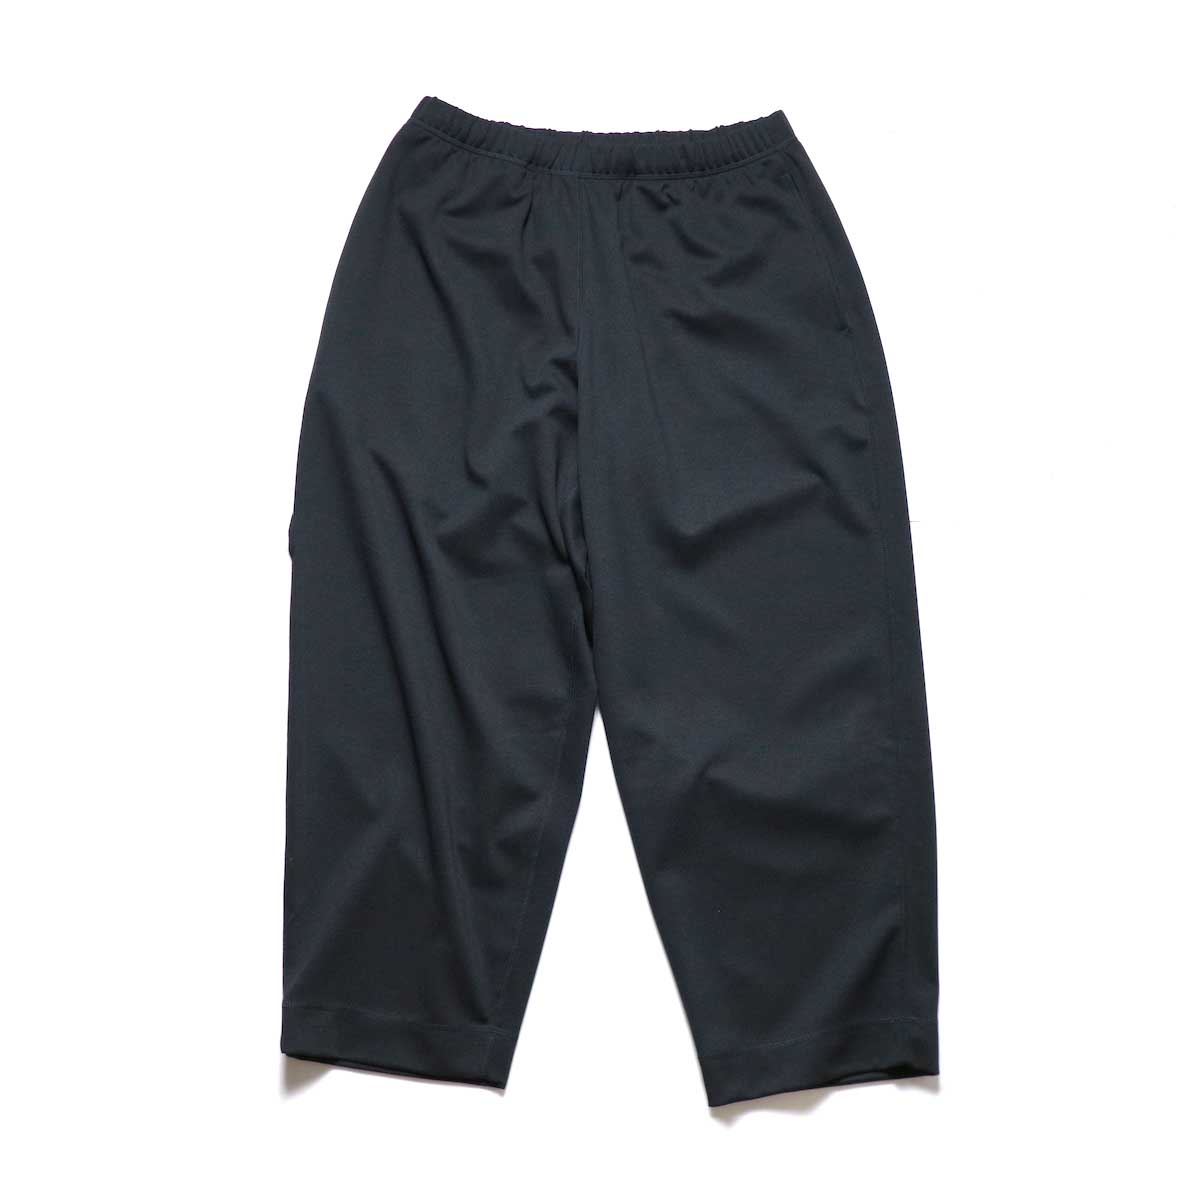 N.HOOLYWOOD / 24RCH-090 Easy Pants (Black)